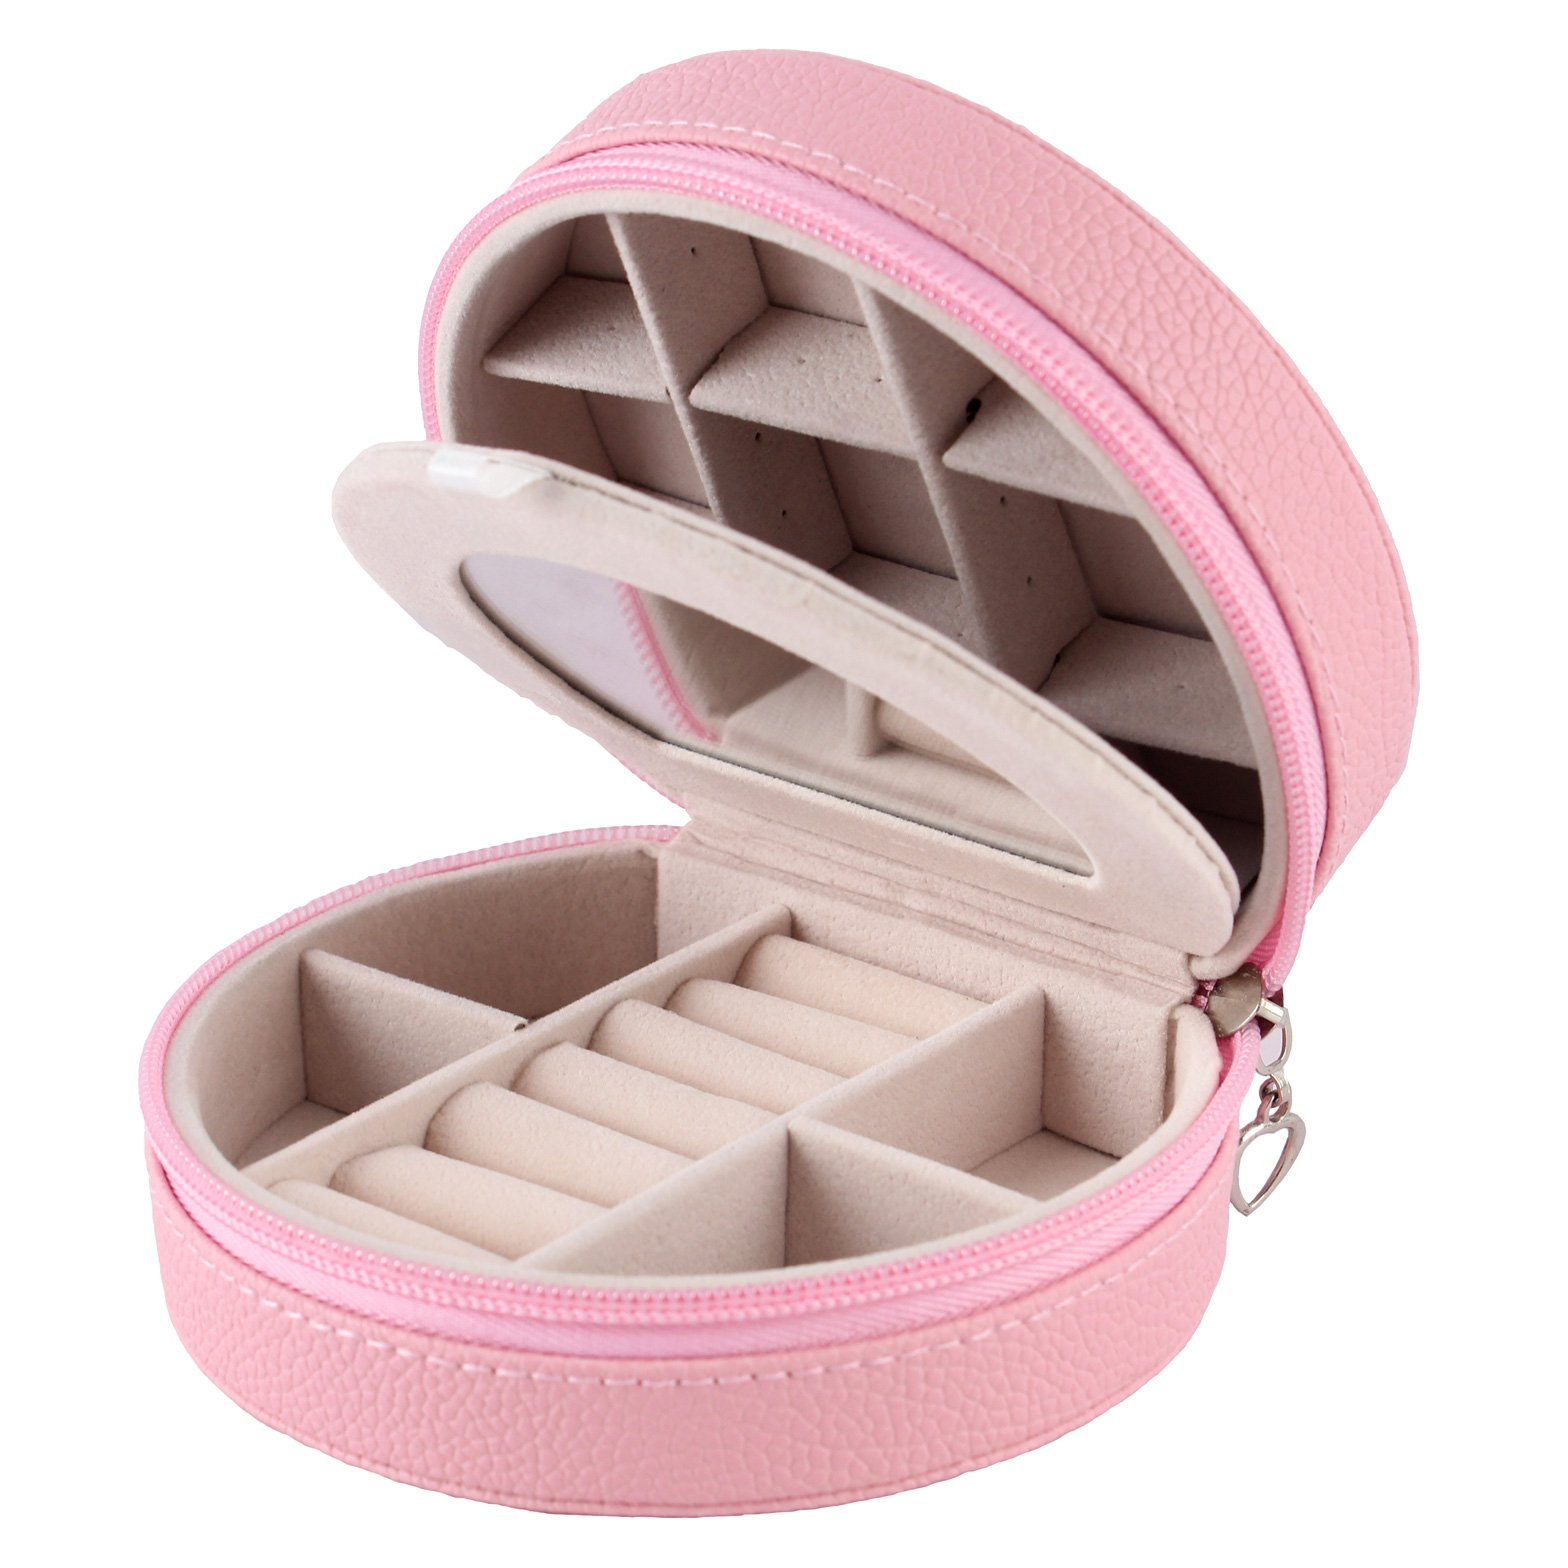 Equuleus Jewelry Box for Women | (Pink) | Portable Jewelry, Earring Holder and Ring Storage Case for Travel with Compartment Organizer